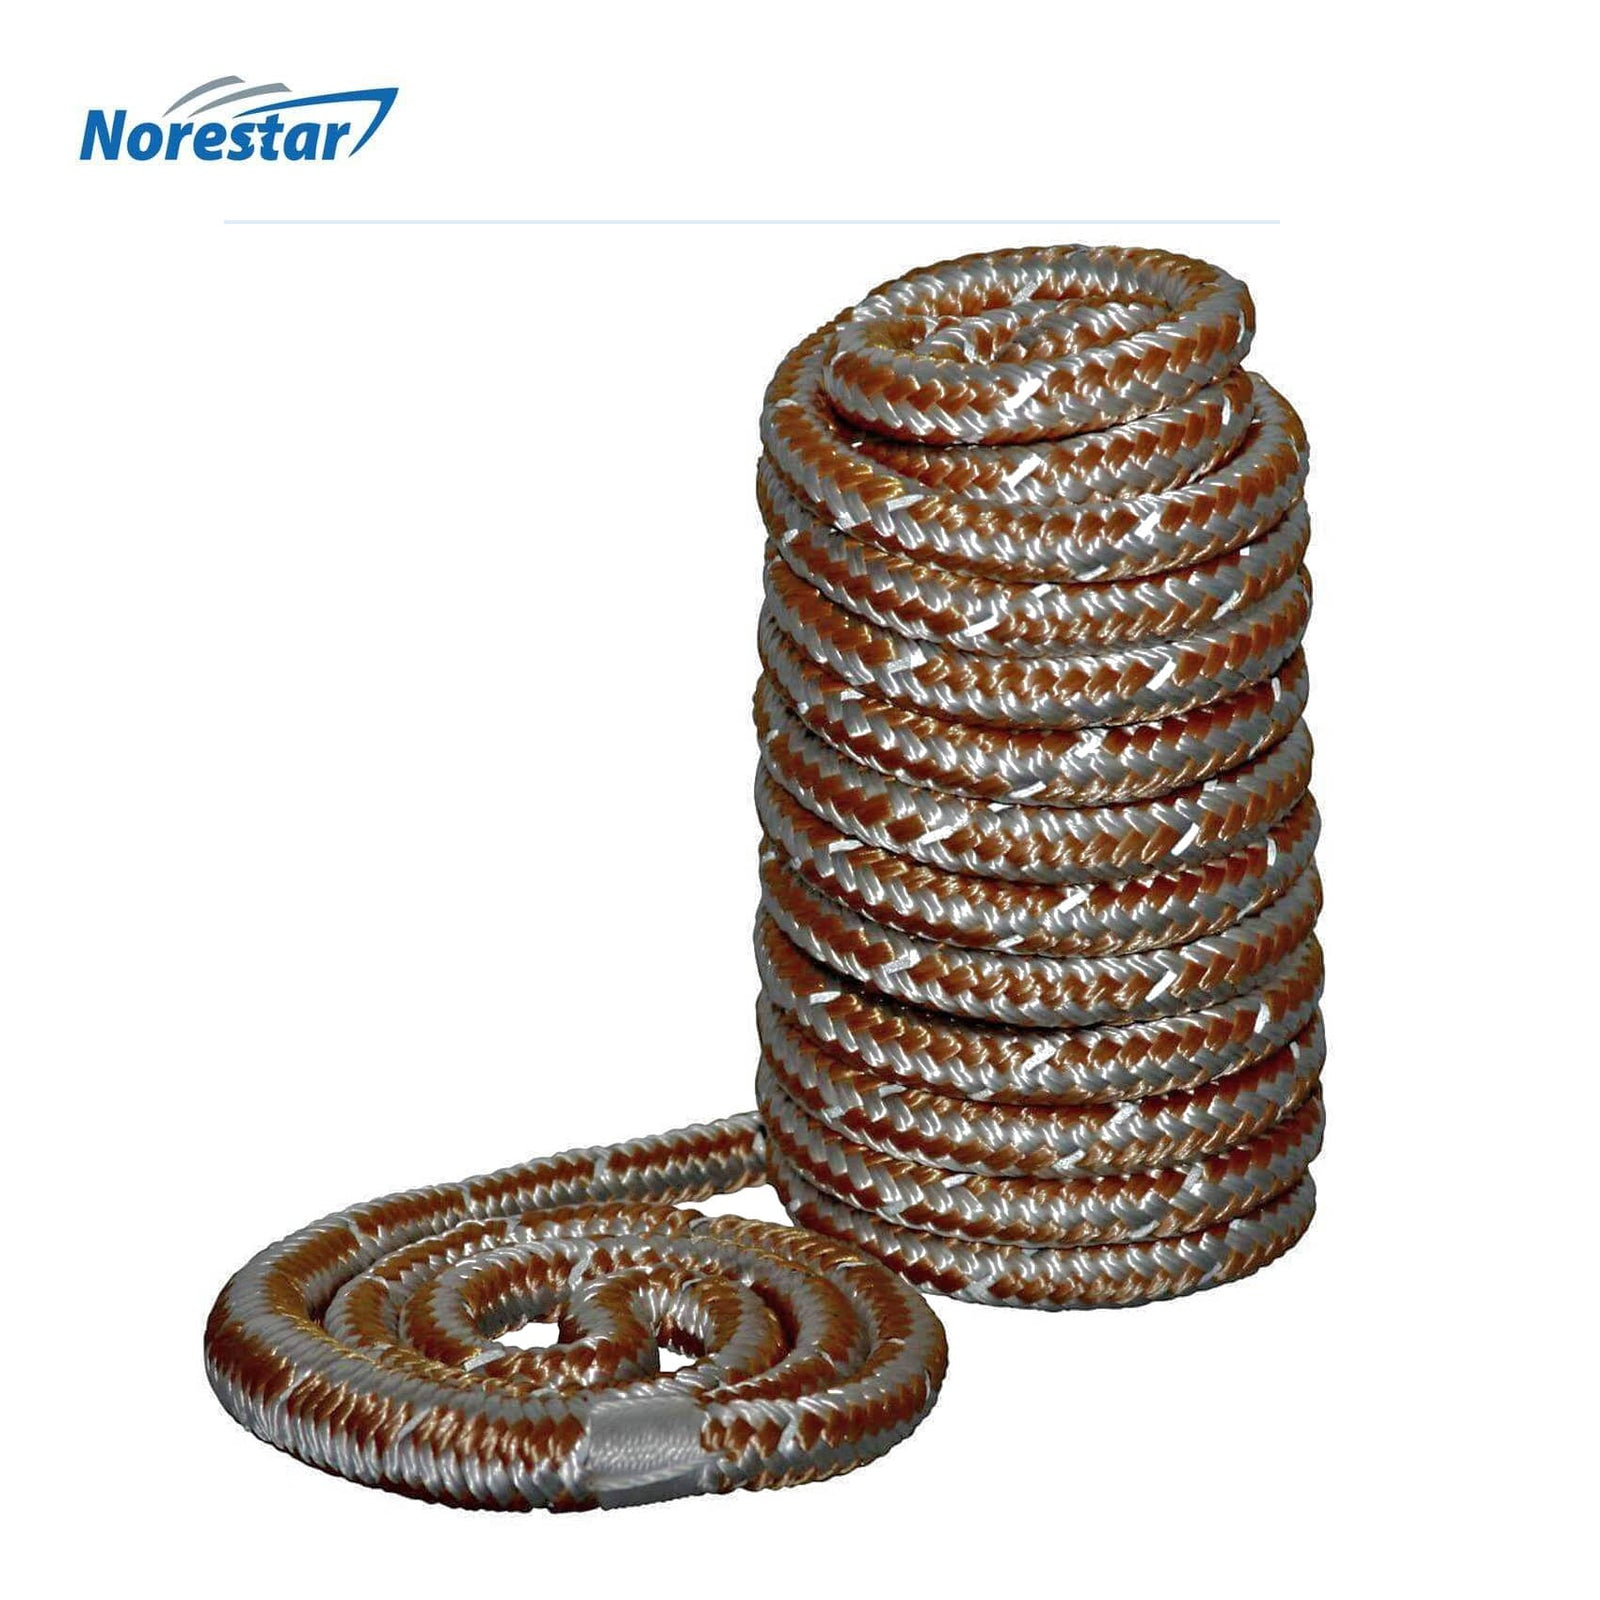 High-Visibility Reflective Braided Nylon Dock Line, Gold - in Low Light